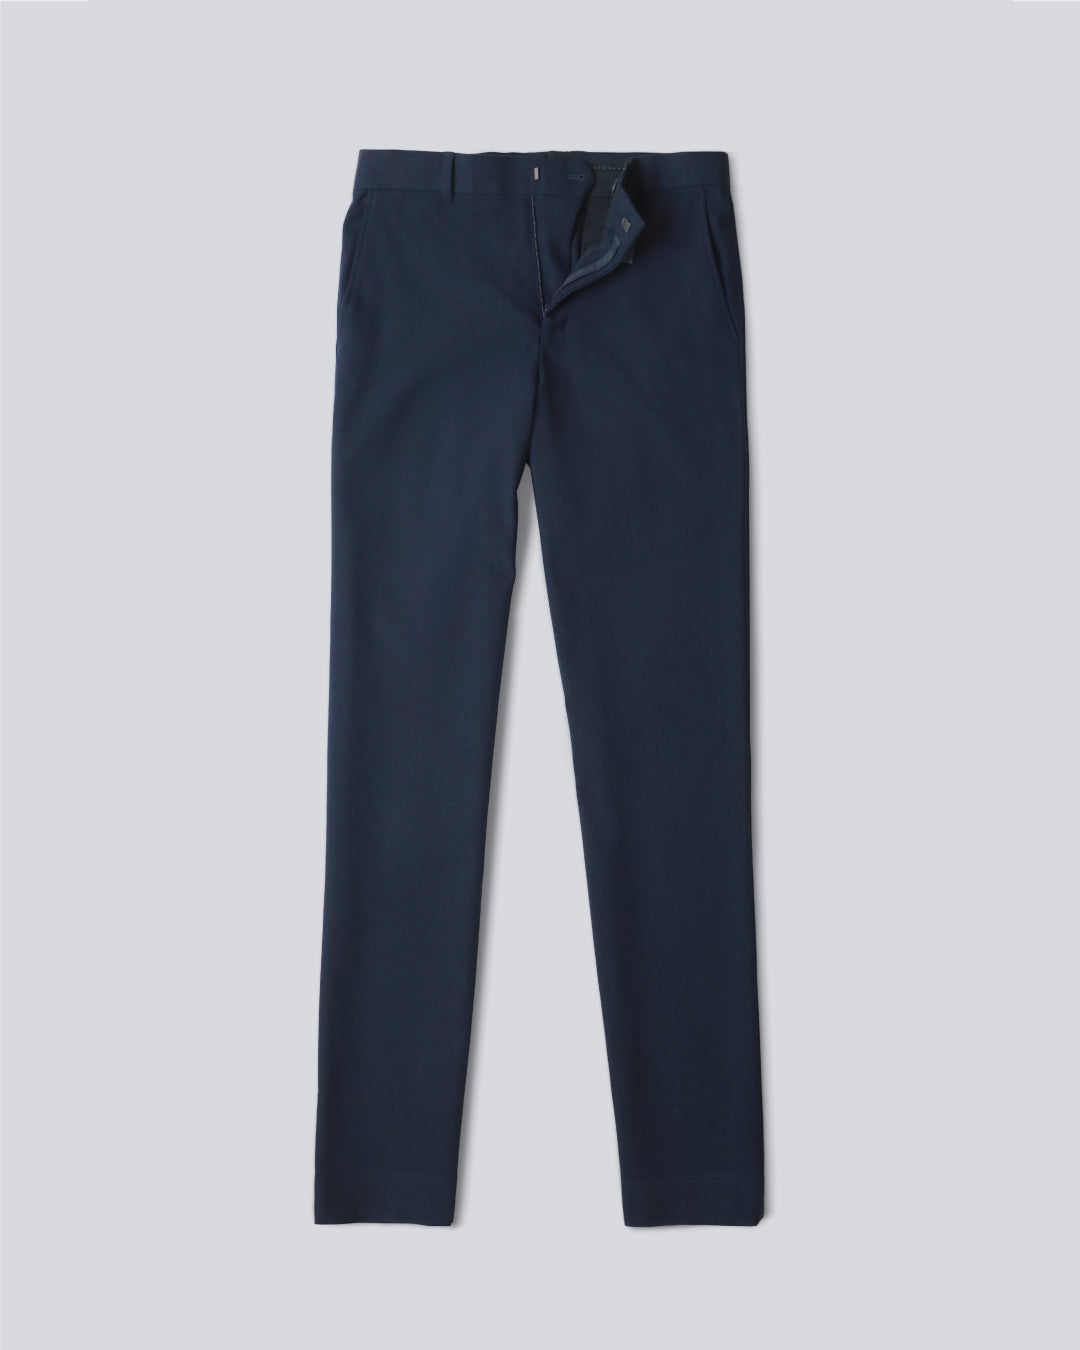 Men's Slim Fit Trousers